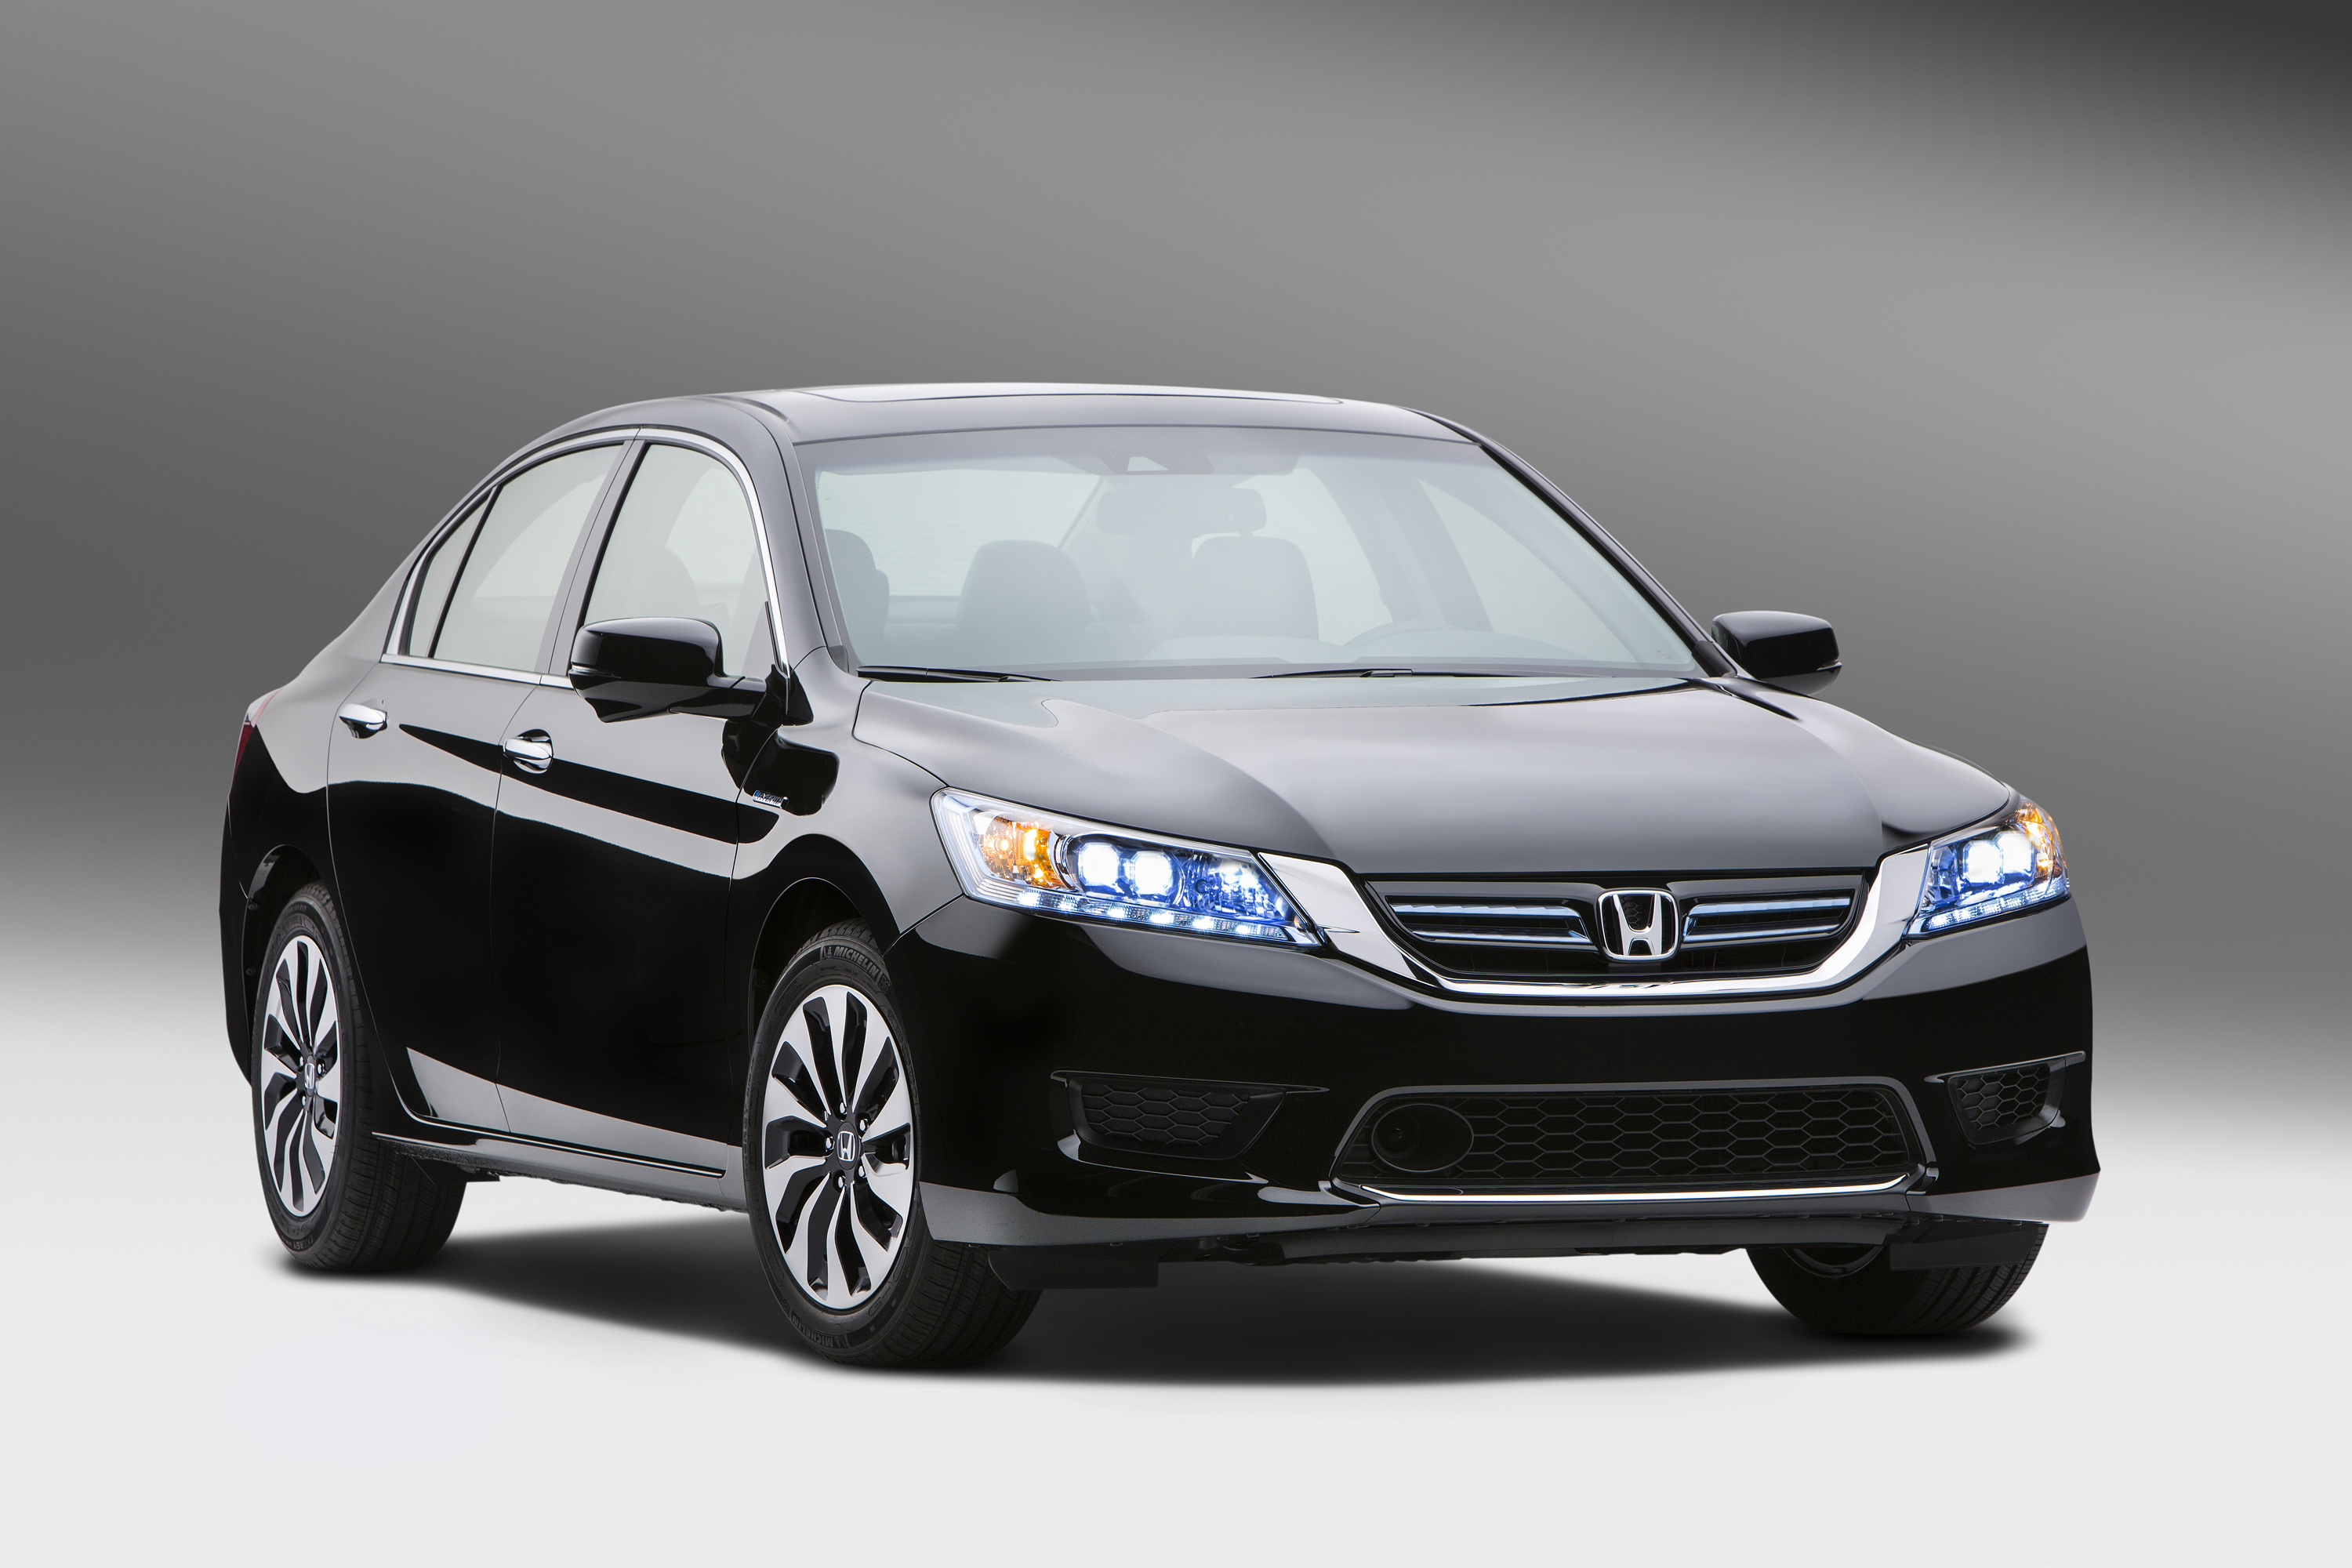 2014 Honda Accord Hybrid Gas Mileage: 47 MPG Combined